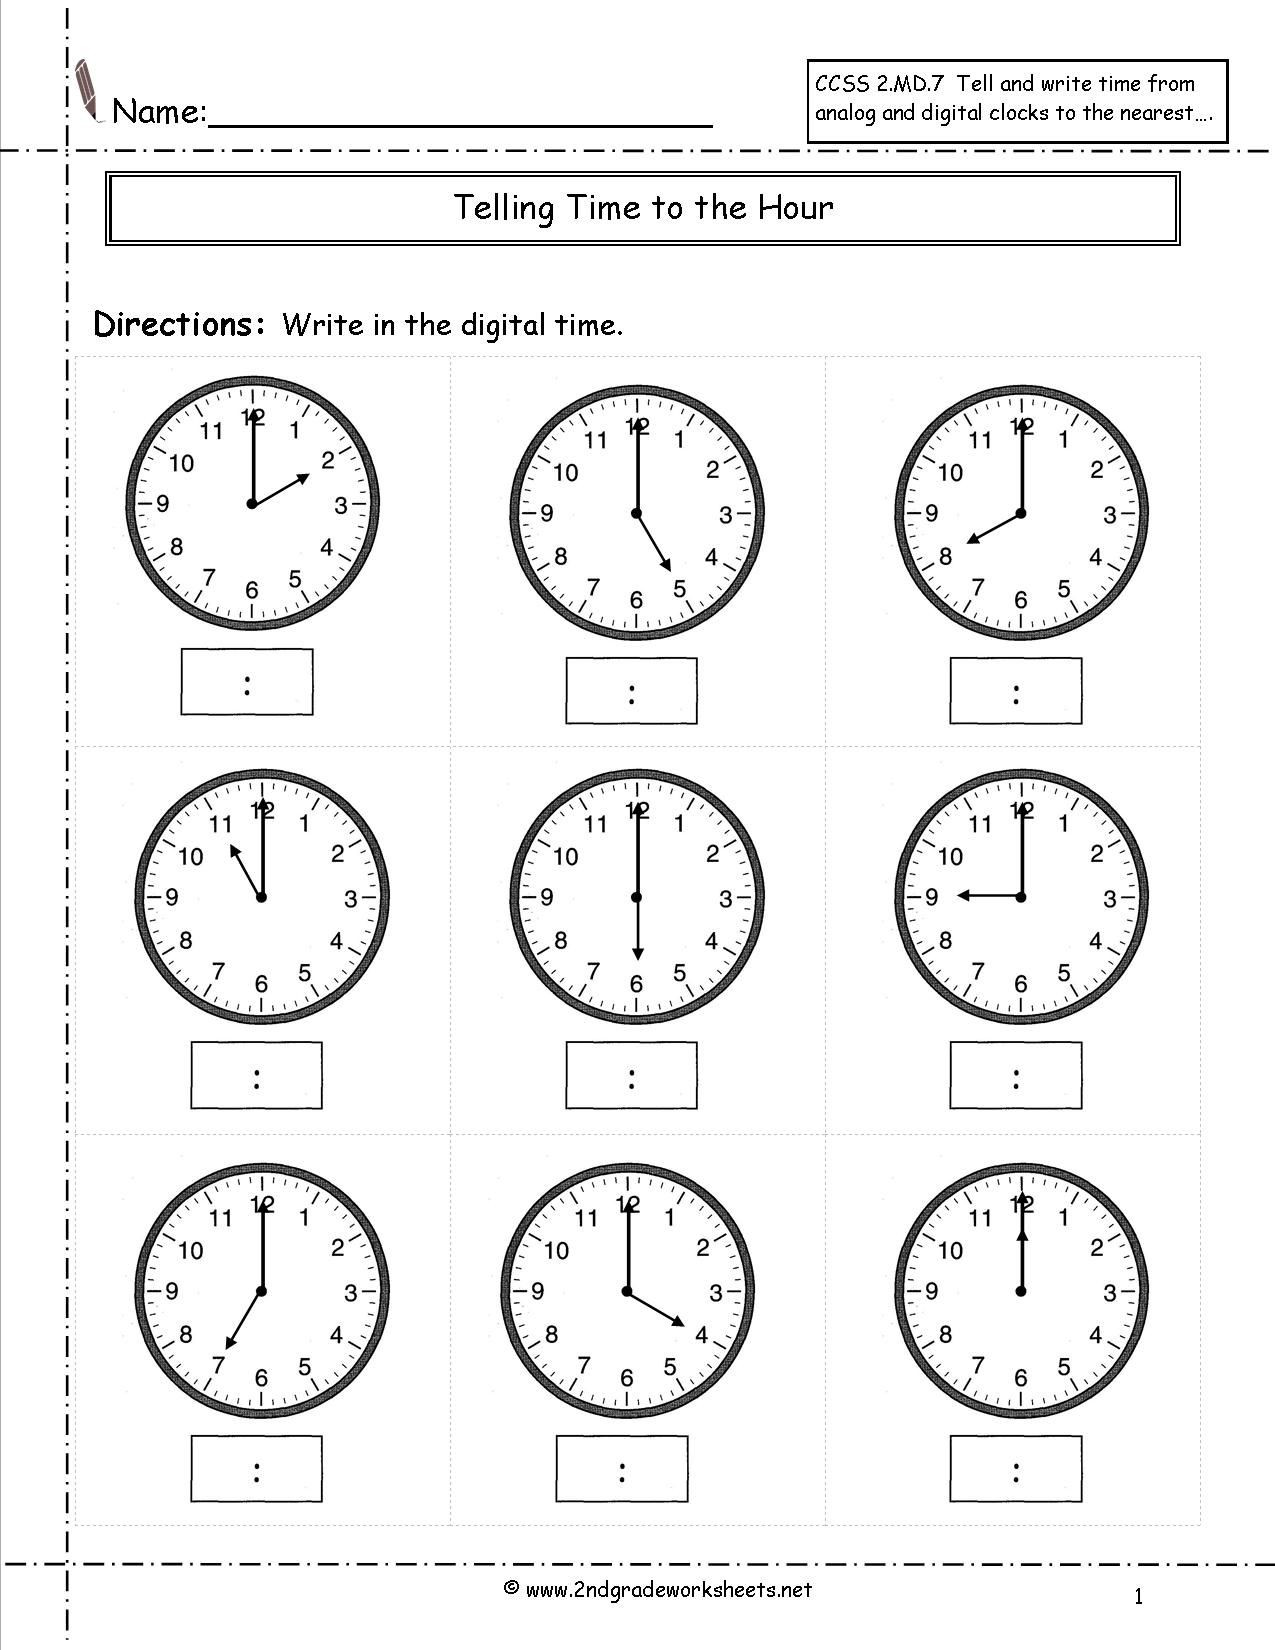 Geometric Shapes Worksheet 2nd Grade Math Worksheet 2nd Grade Algebra Worksheets Picture Ideas